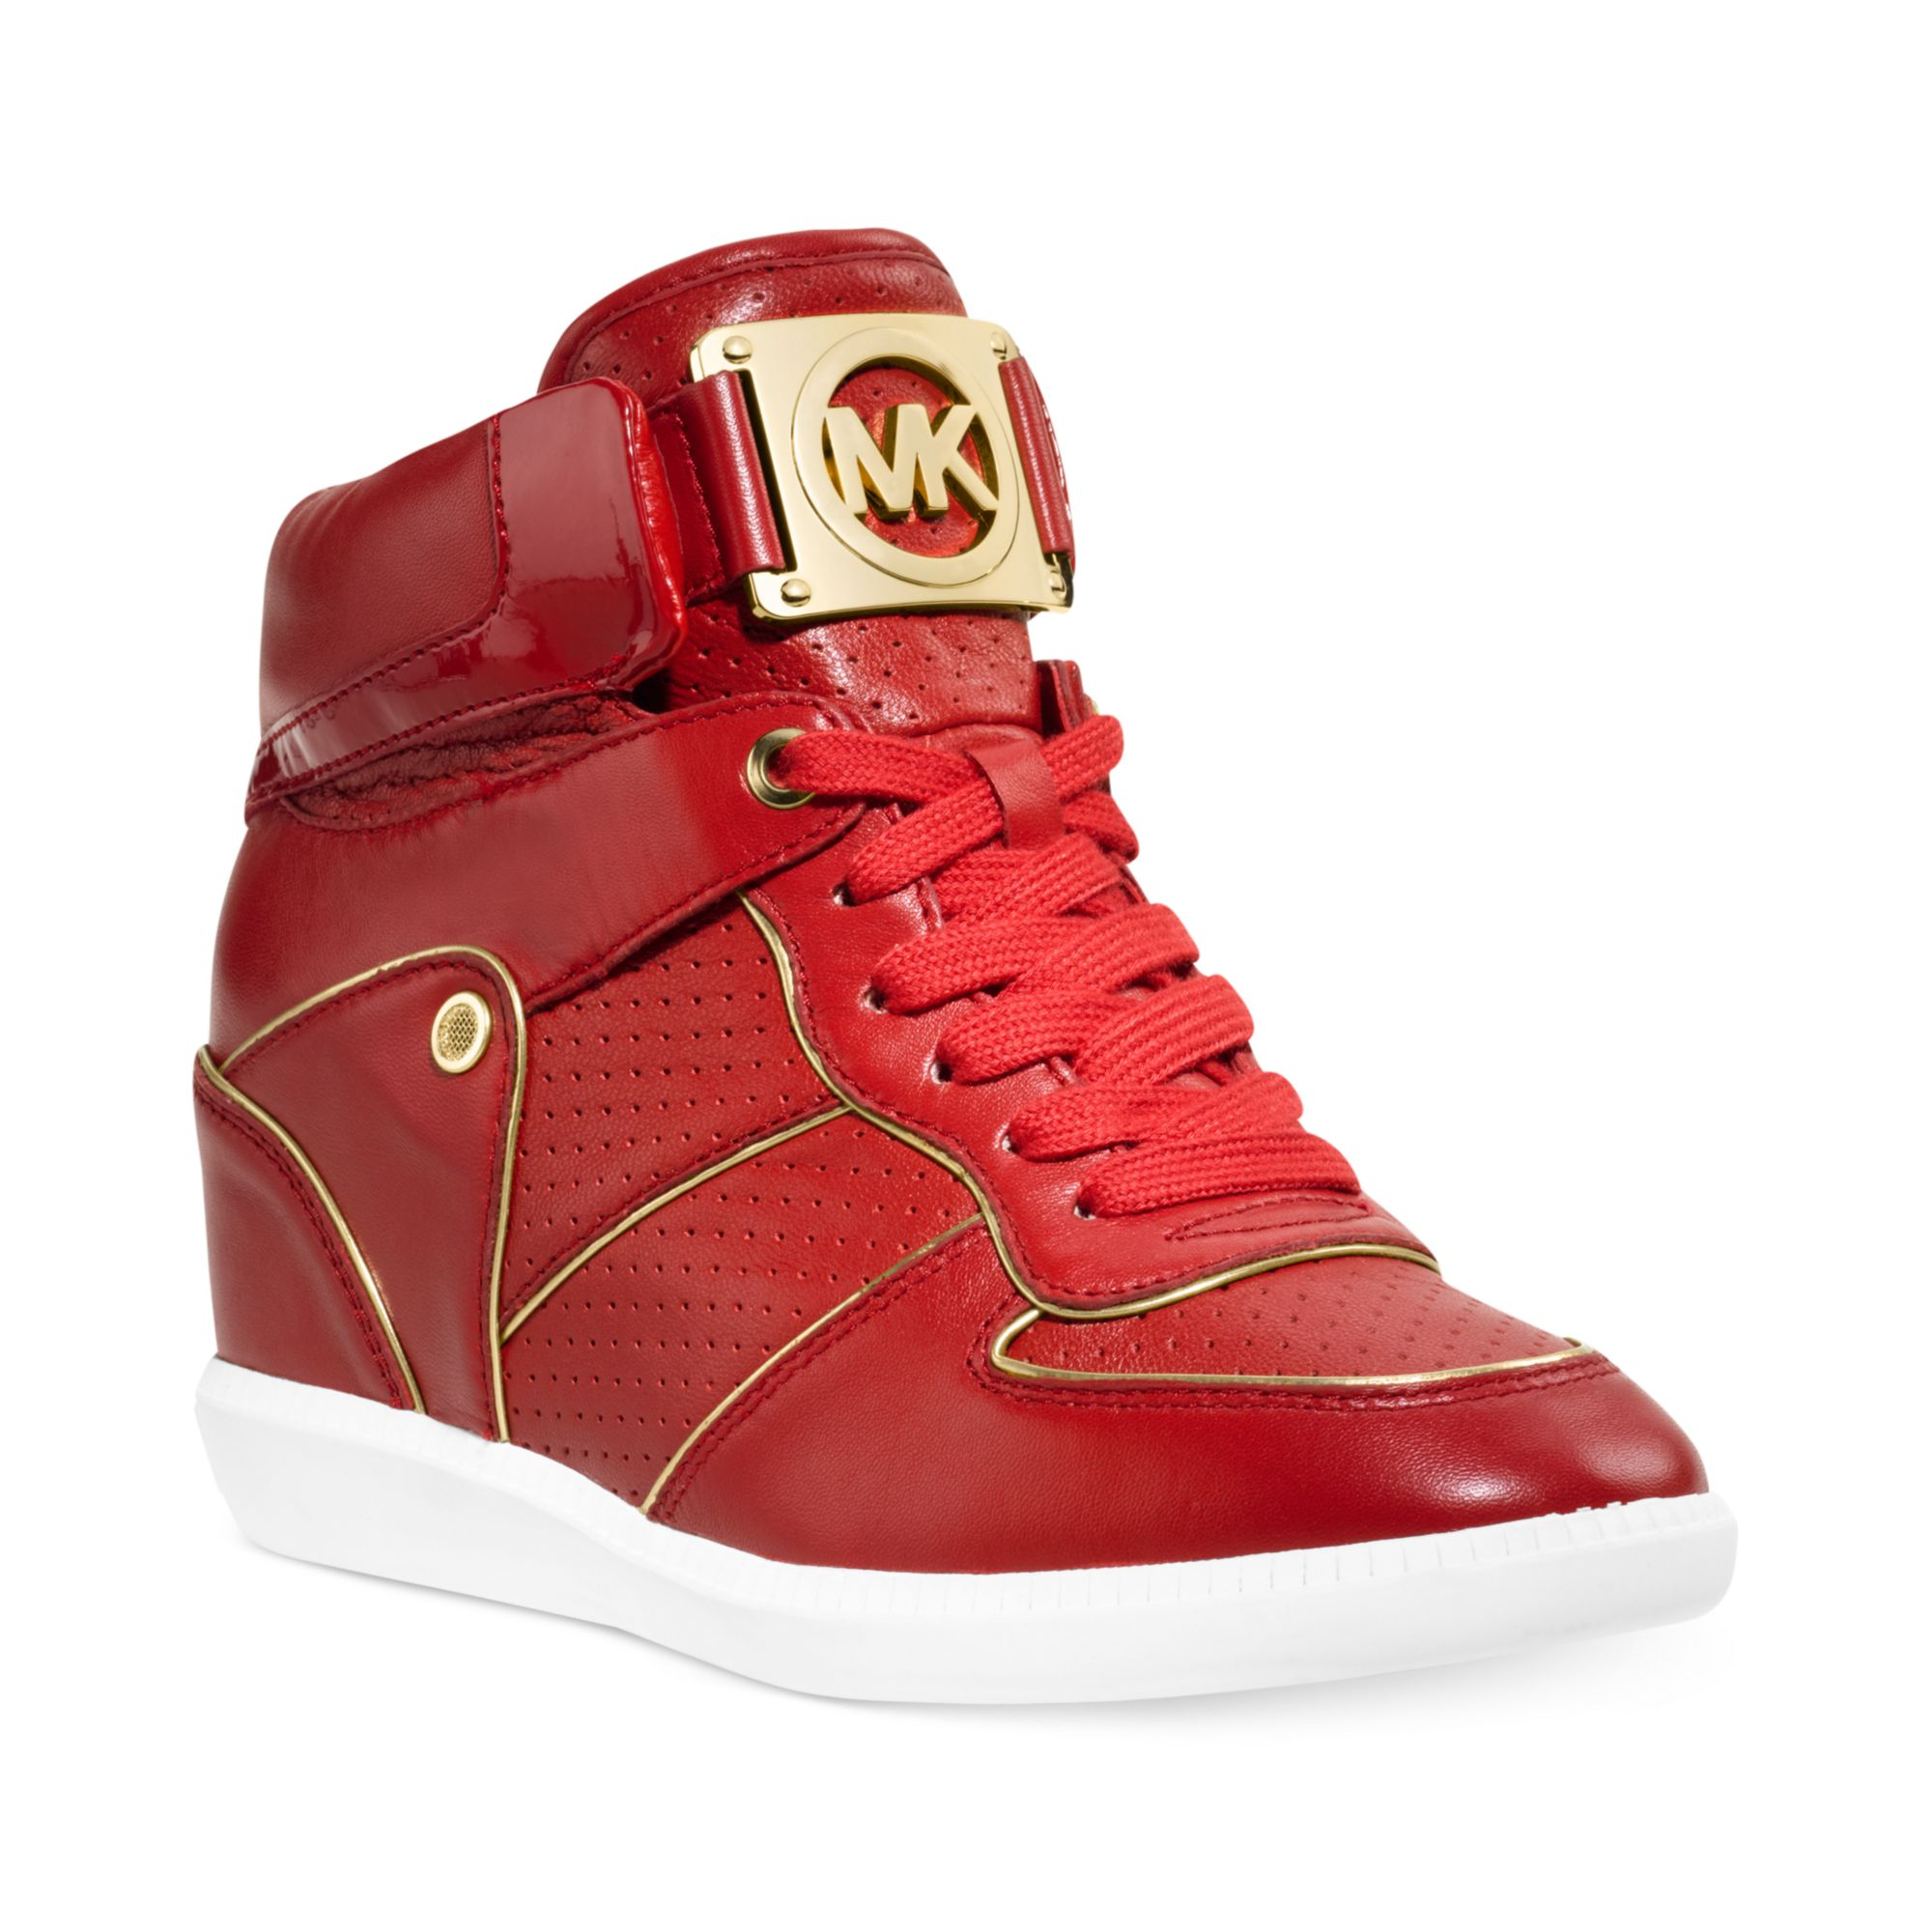 michael kors nikki high top logo sneakers in red red leather lyst. Black Bedroom Furniture Sets. Home Design Ideas